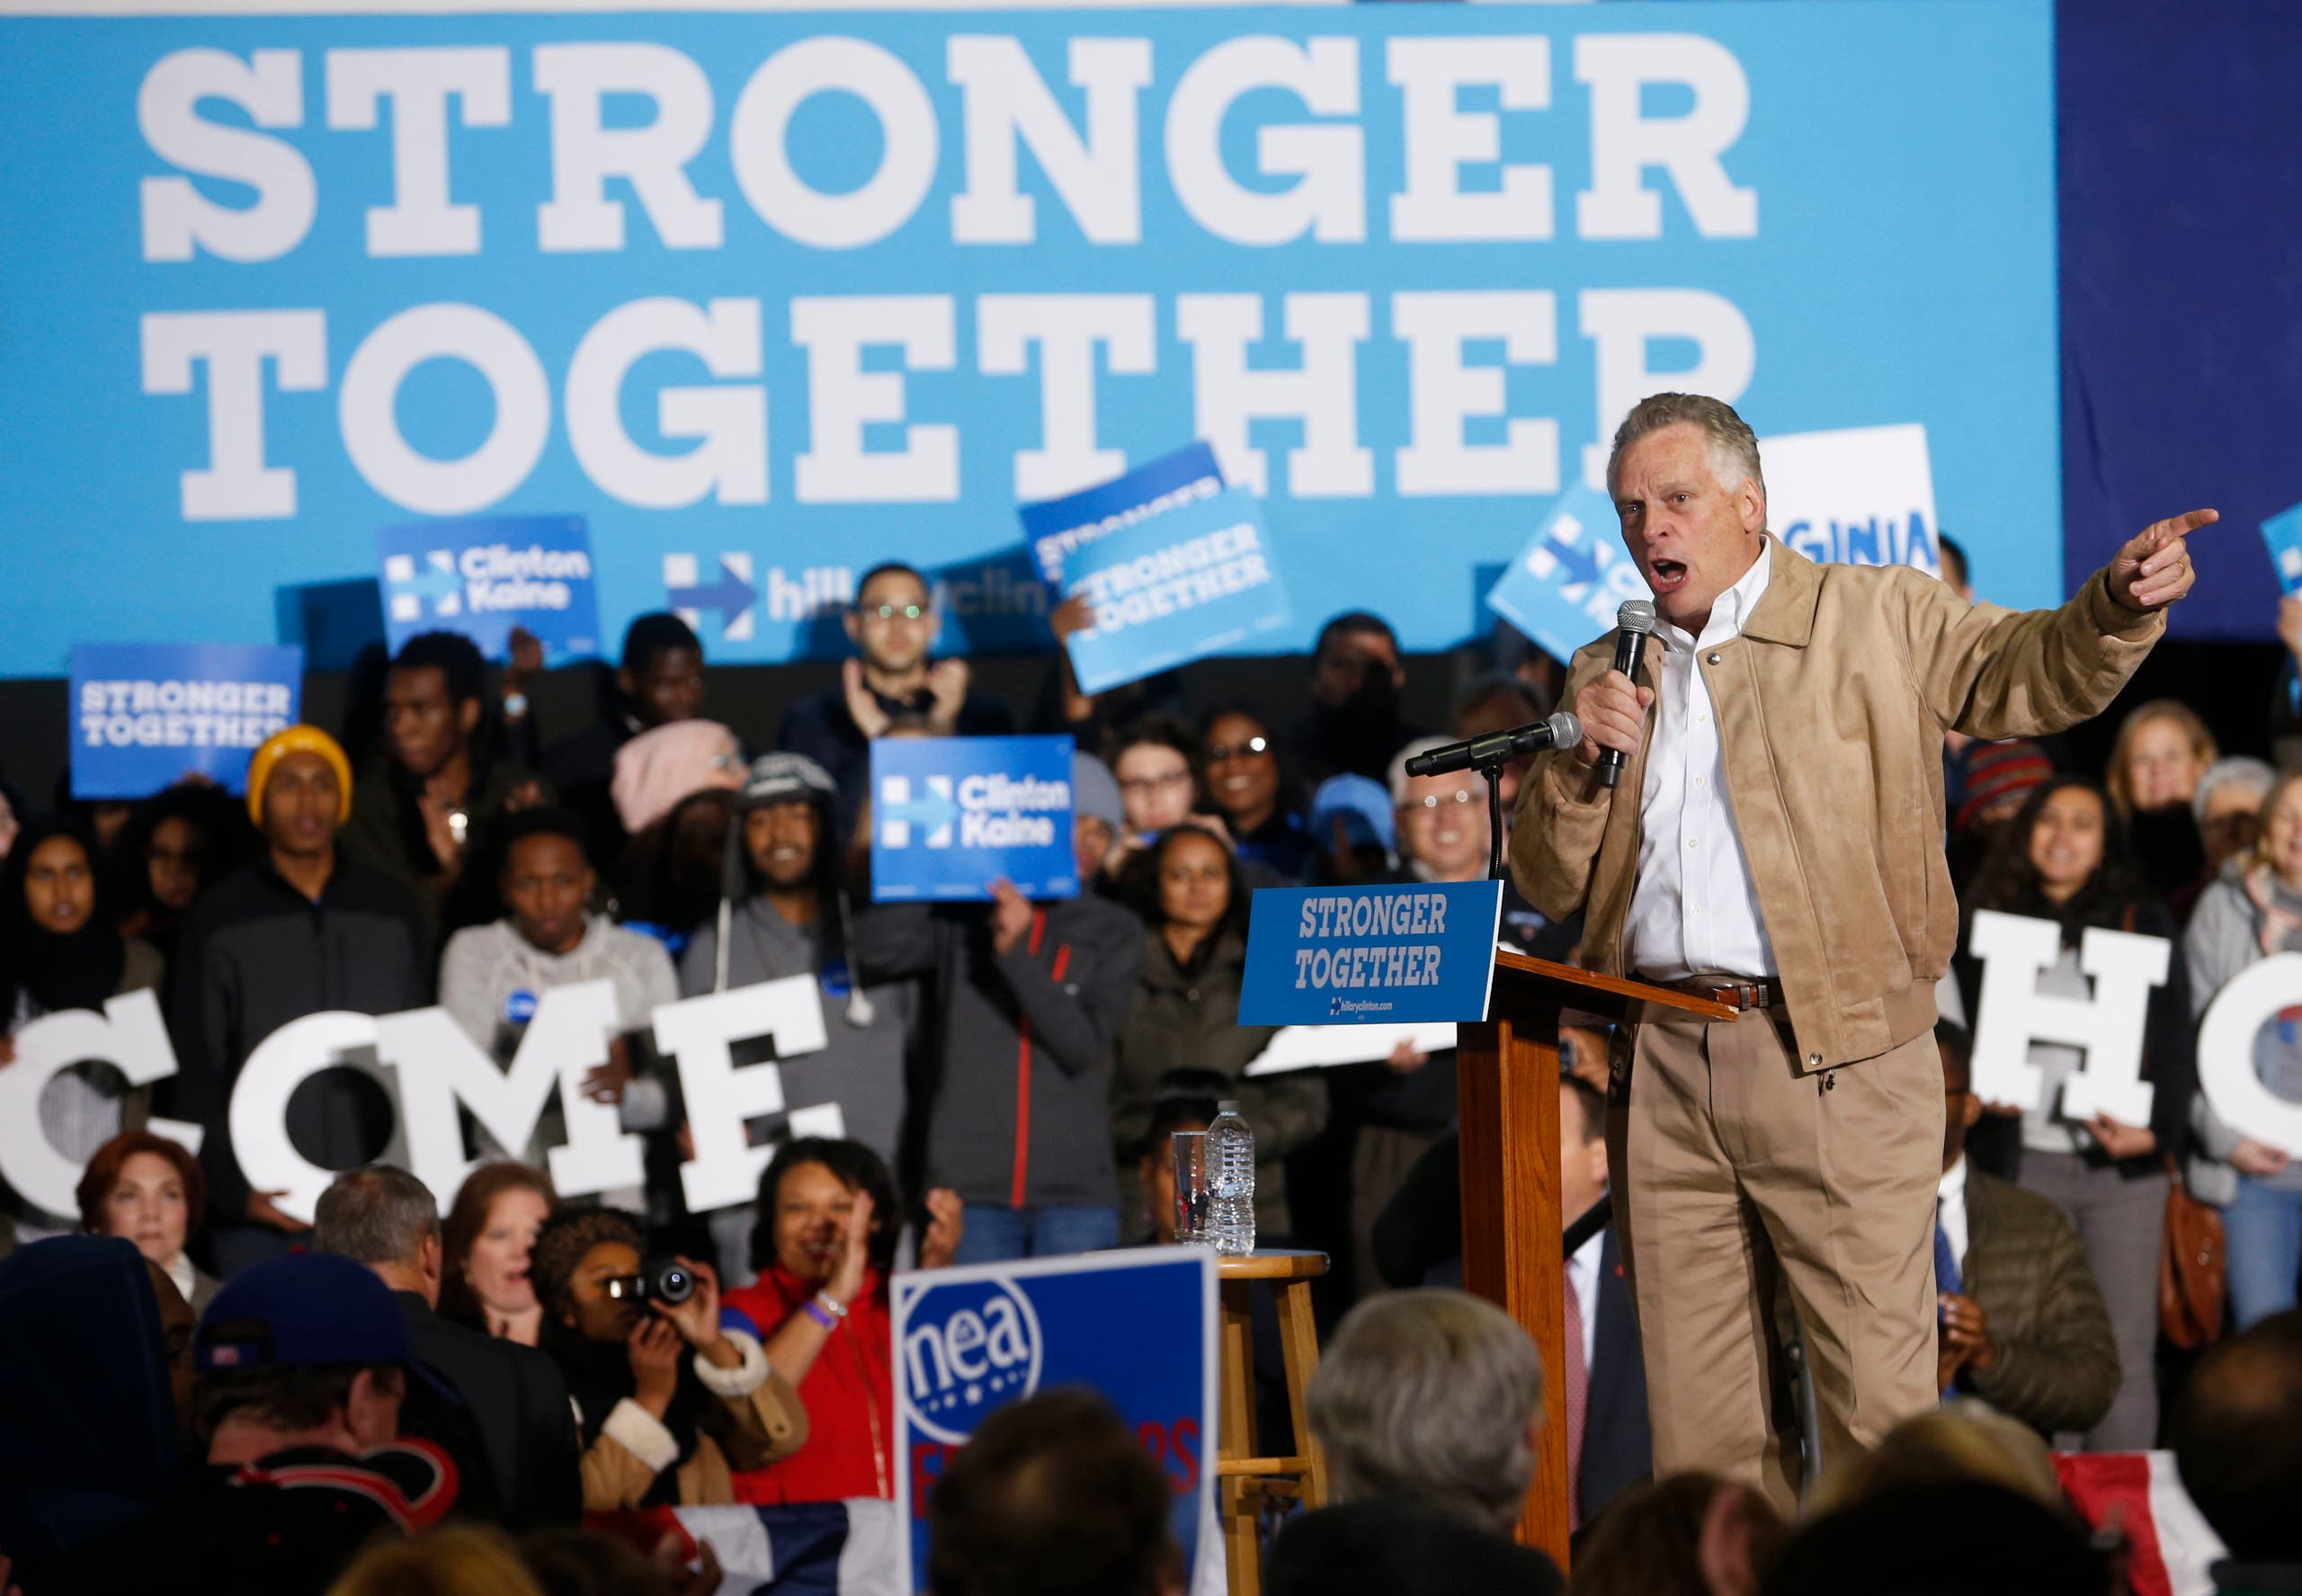 Virginia Gov. Terry McAuliffe, gestures as he speaks during a rally for Democratic vice presidential candidate US Sen. Tim Kaine, D-Va., in Richmond, Va., Monday, Nov. 7, 2016. (AP)